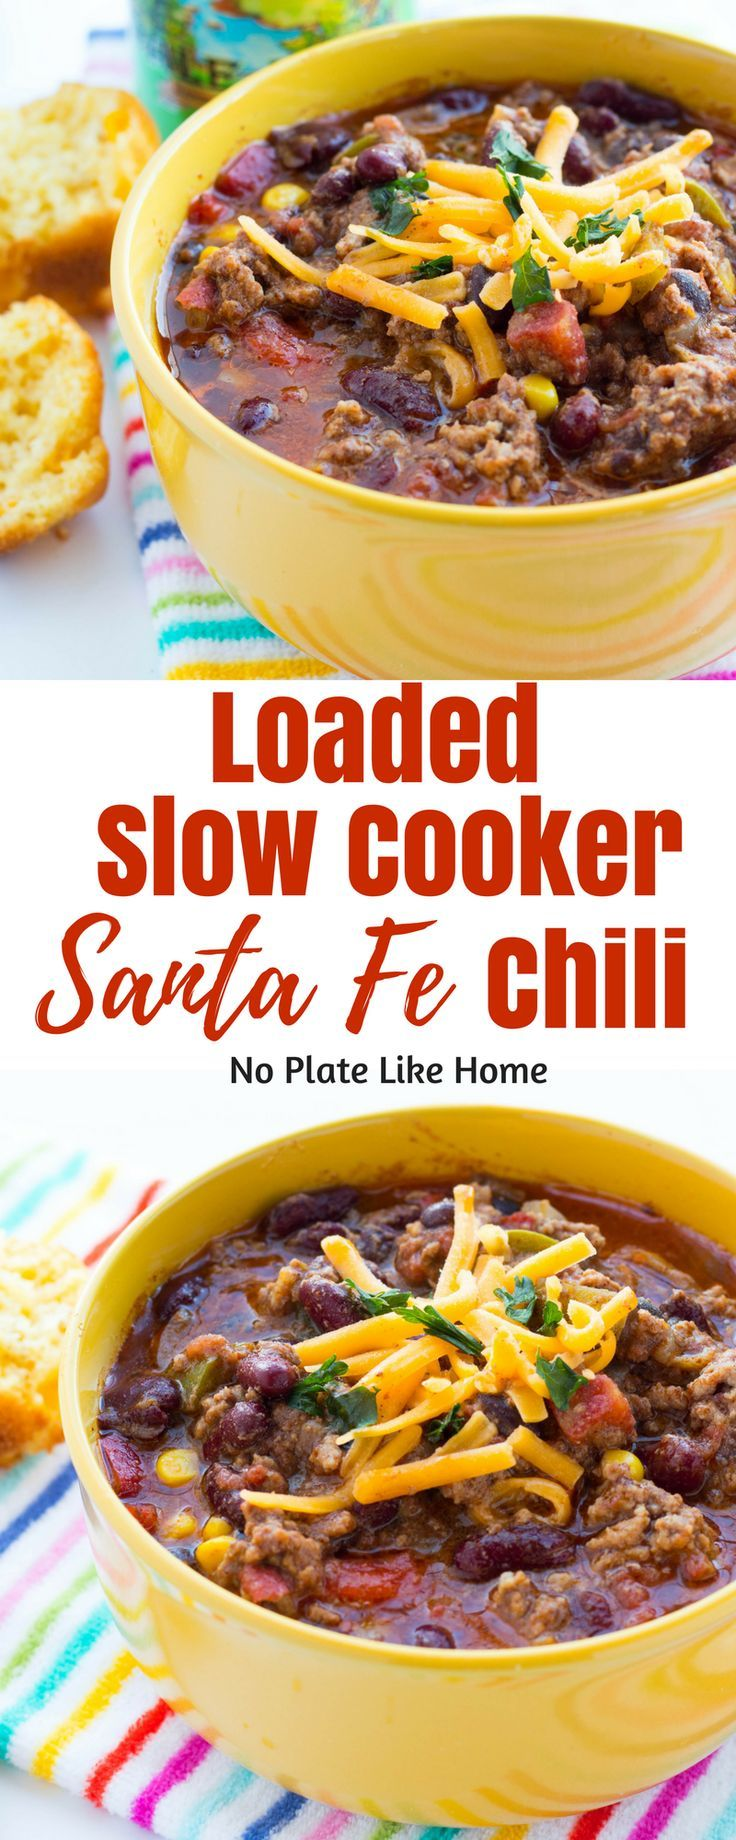 Loaded Slow Cooker Santa Fe Chili Is Loaded With Ground Beef Beans Tomatoes Corn Bla Slow Cooker Chili Recipe Chili Recipe With Corn Slow Cooker Appetizers